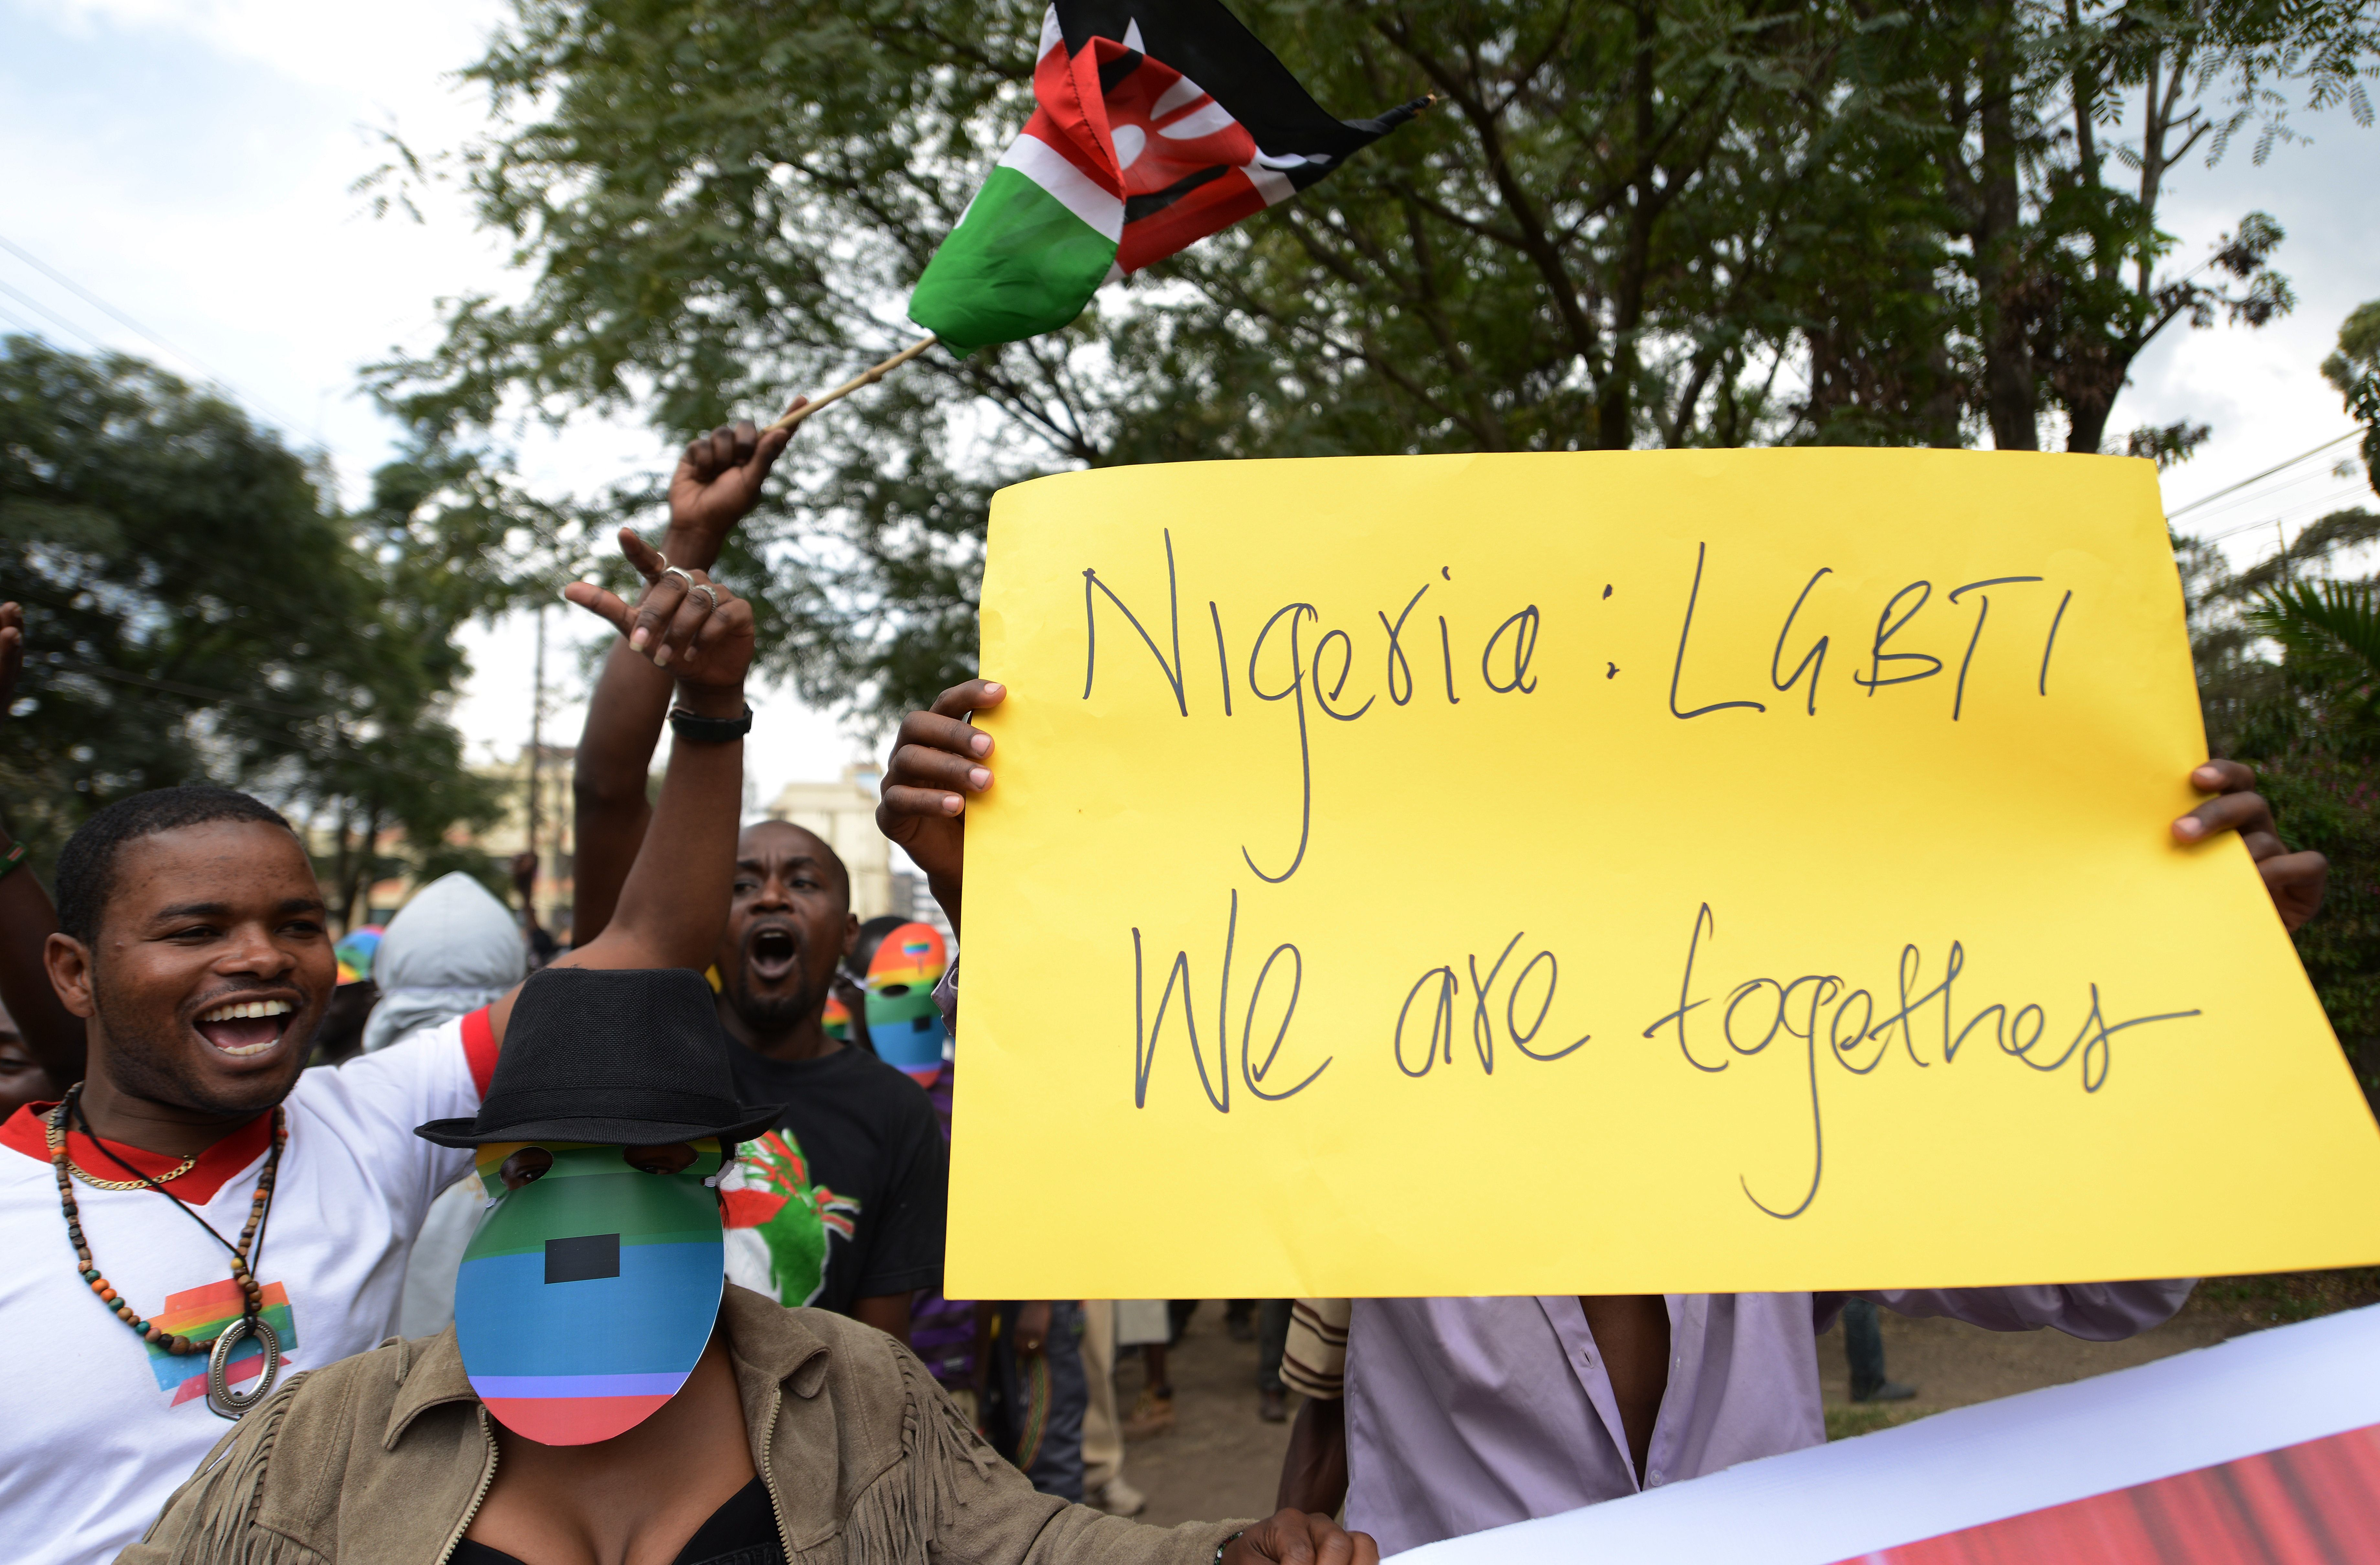 Kenyan gay and lesbian organisations demonstrate outside the Nigerian High Commission in Nairobi on February 7, 2014. Nigerian President Goodluck Jonathan in 2013 had signed a bill into law against gay marriage and civil partnerships. The Same Sex Marriage (Prohibition) Bill 2013 imposes penalties of up to 14 years' imprisonment for anyone found to have entered in to such a union. Anyone who founds or supports gay groups or clubs also runs the risk of a maximum 10-year jail term. The legislation, which effectively reinforces existing laws banning homosexuality in Nigeria, has been widely condemned abroad as draconian and against a raft of human rights conventions. AFP PHOTO/SIMON MAINA        (Photo credit should read SIMON MAINA/AFP/Getty Images)